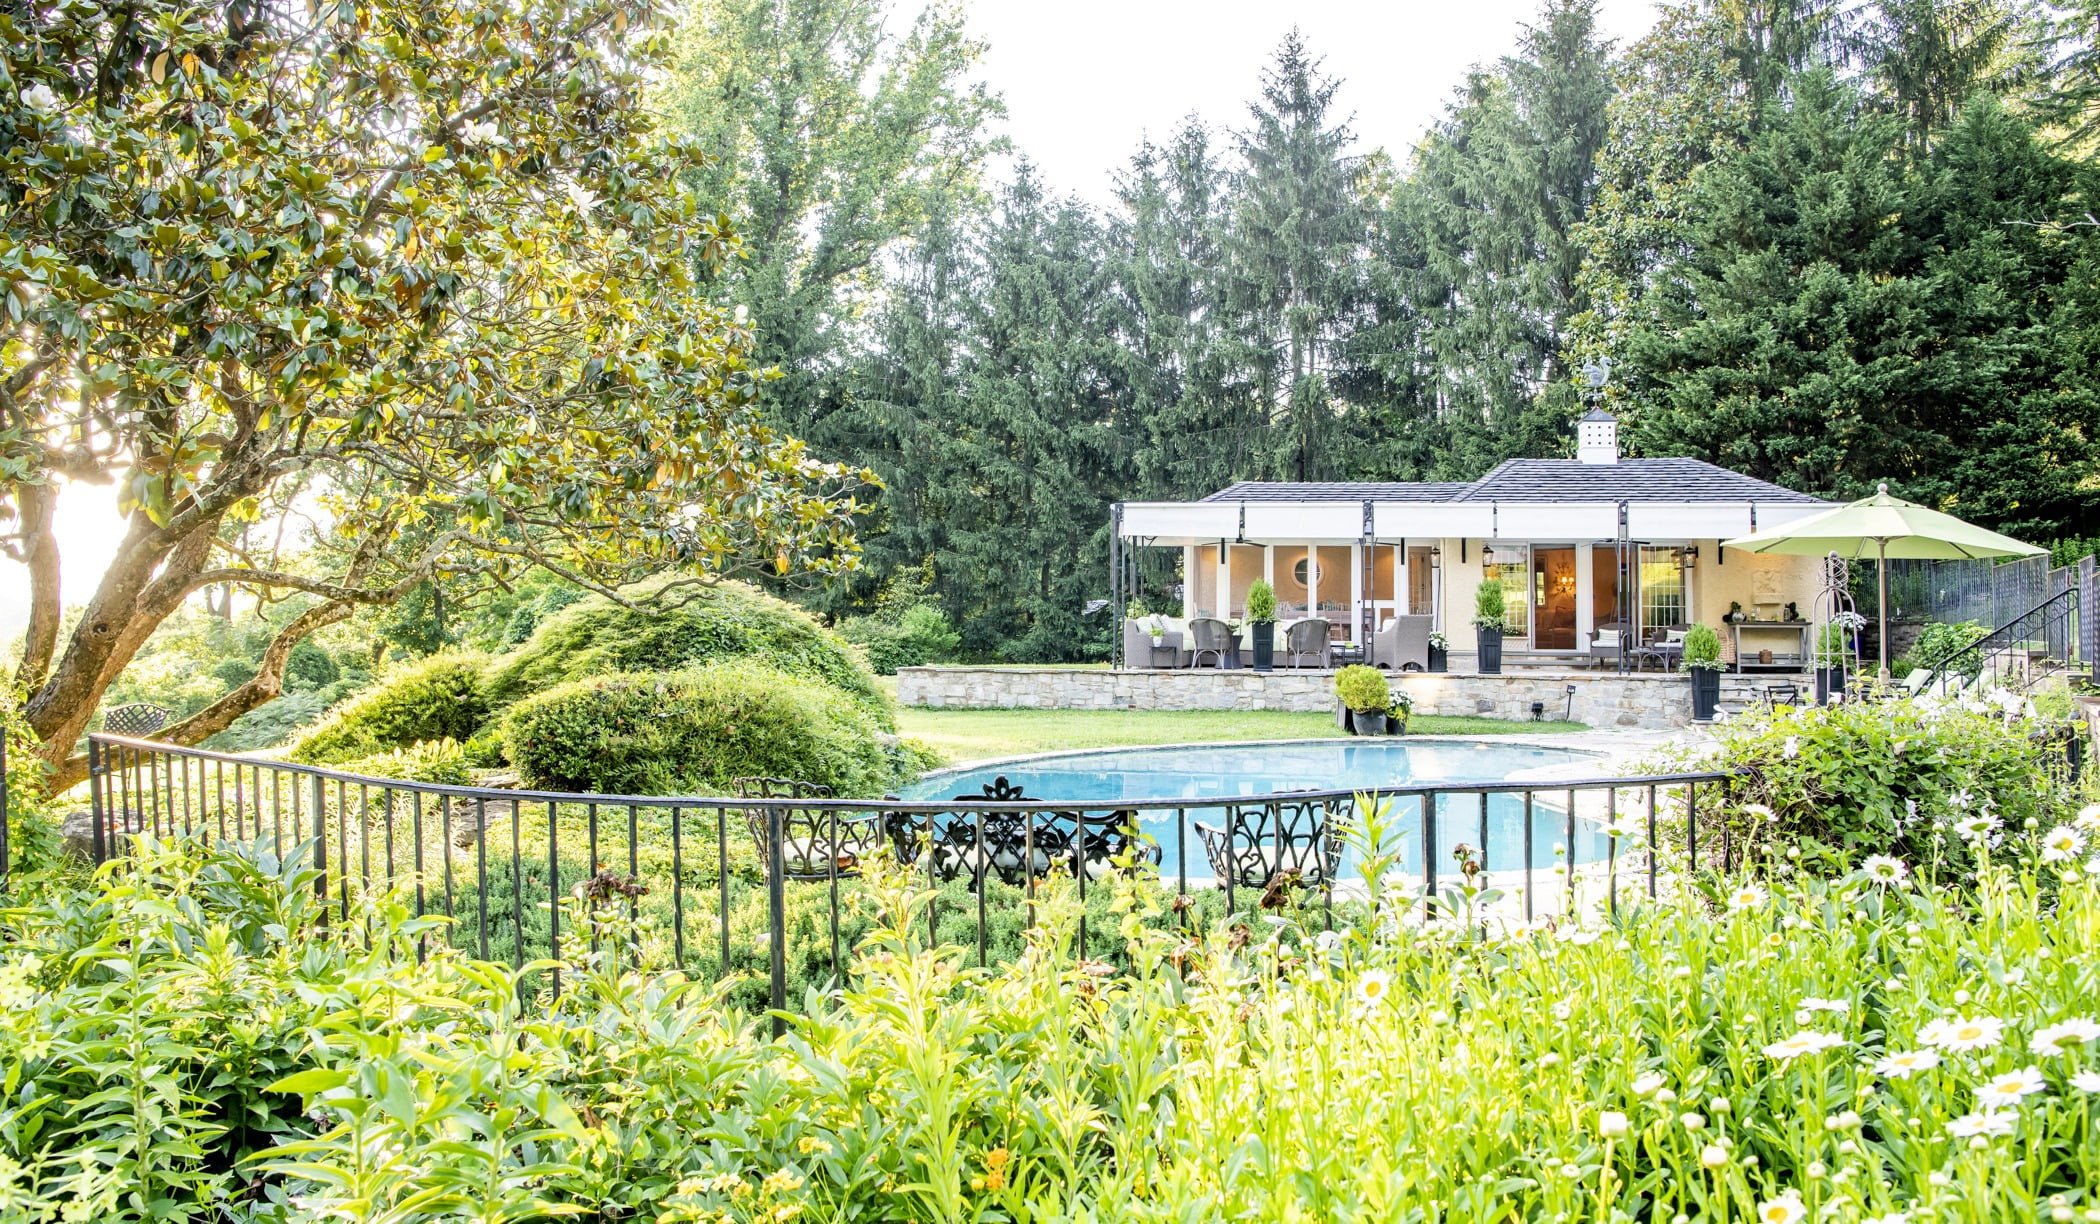 Luxury pool house custom designed for a home remodel with a large seating space and large metal pergola (Outside fence view)